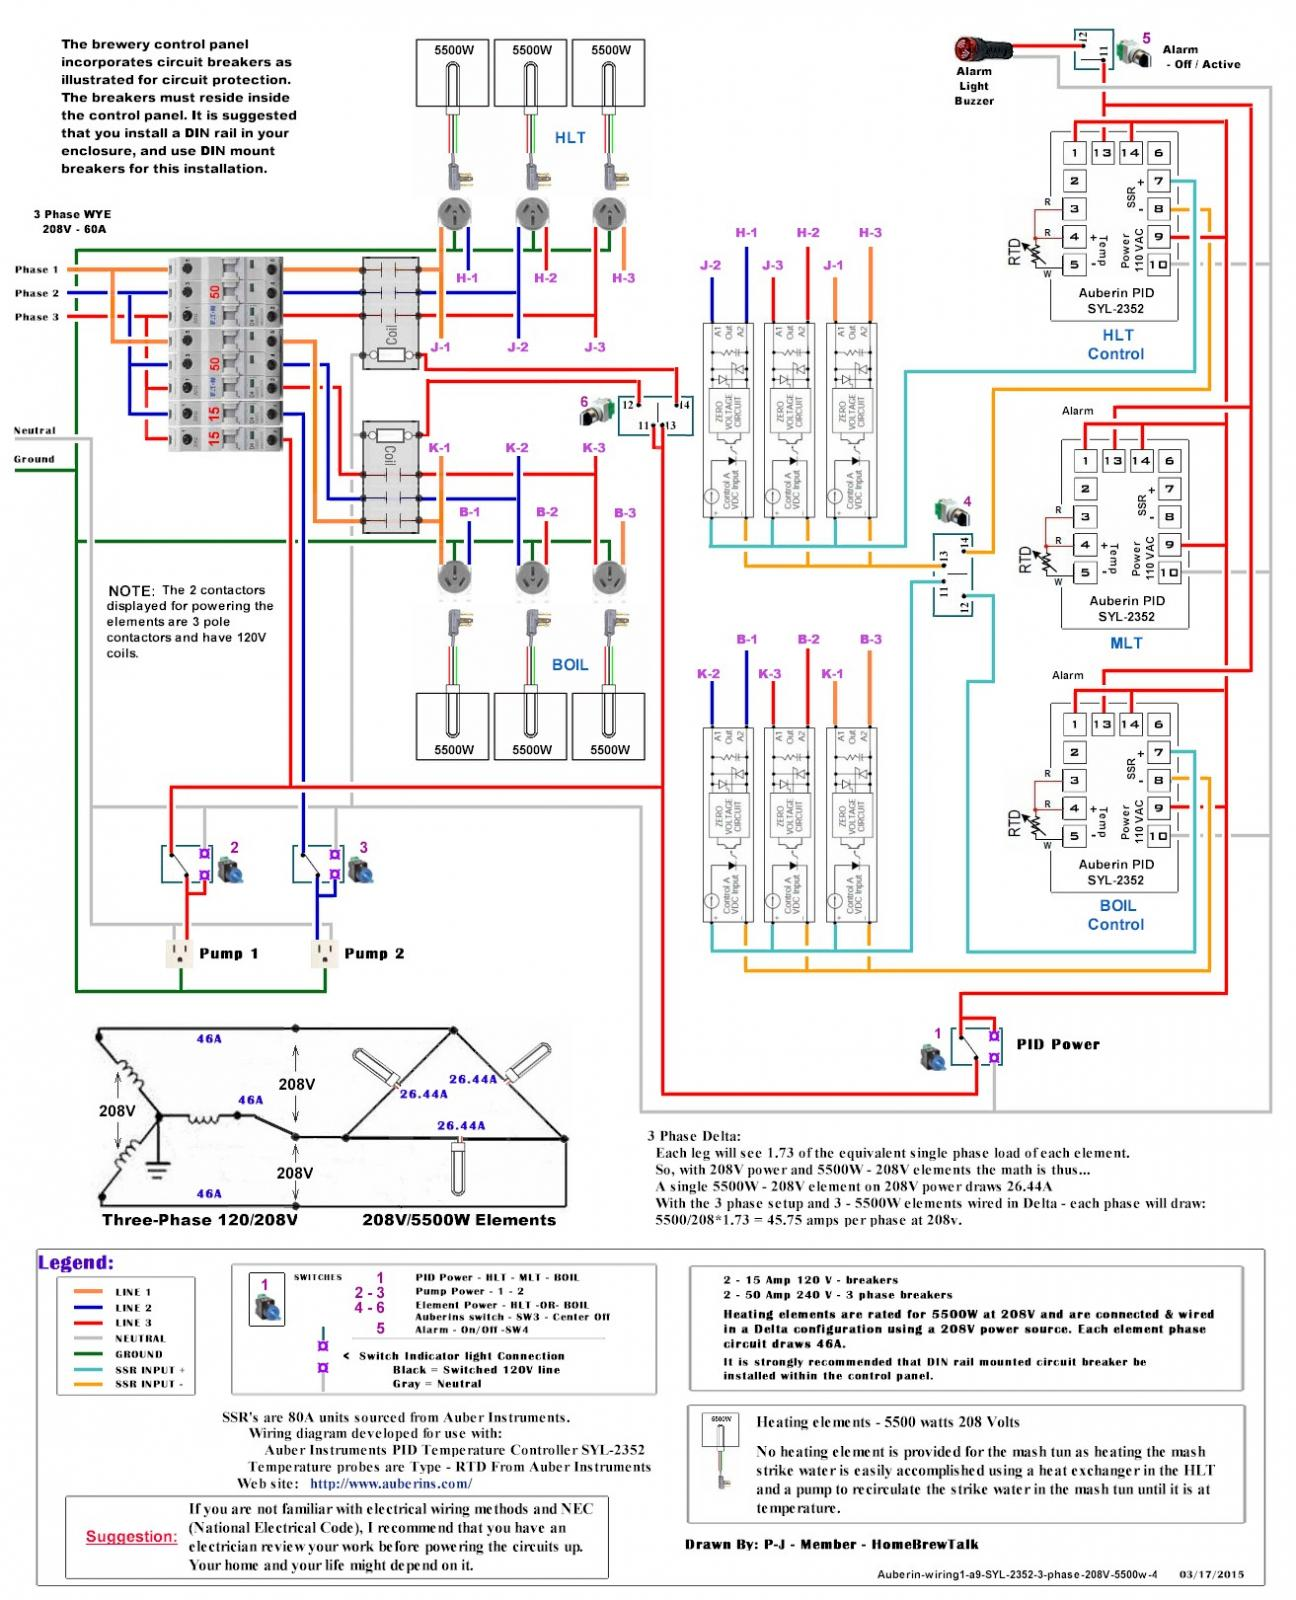 3 Phase 208V Control Panel for 3 or 4 Elements | Page 2 ... on 3 phase transformer wiring diagram, 3 phase contactor wiring diagram, 3 phase power wiring diagram, 3 phase motor wiring diagram, 3 phase plug wiring diagram, 3 phase pressure switch wiring diagram, 3 phase controller wiring diagram, 3 phase capacitor wiring diagram, 3 phase panel wiring diagram,